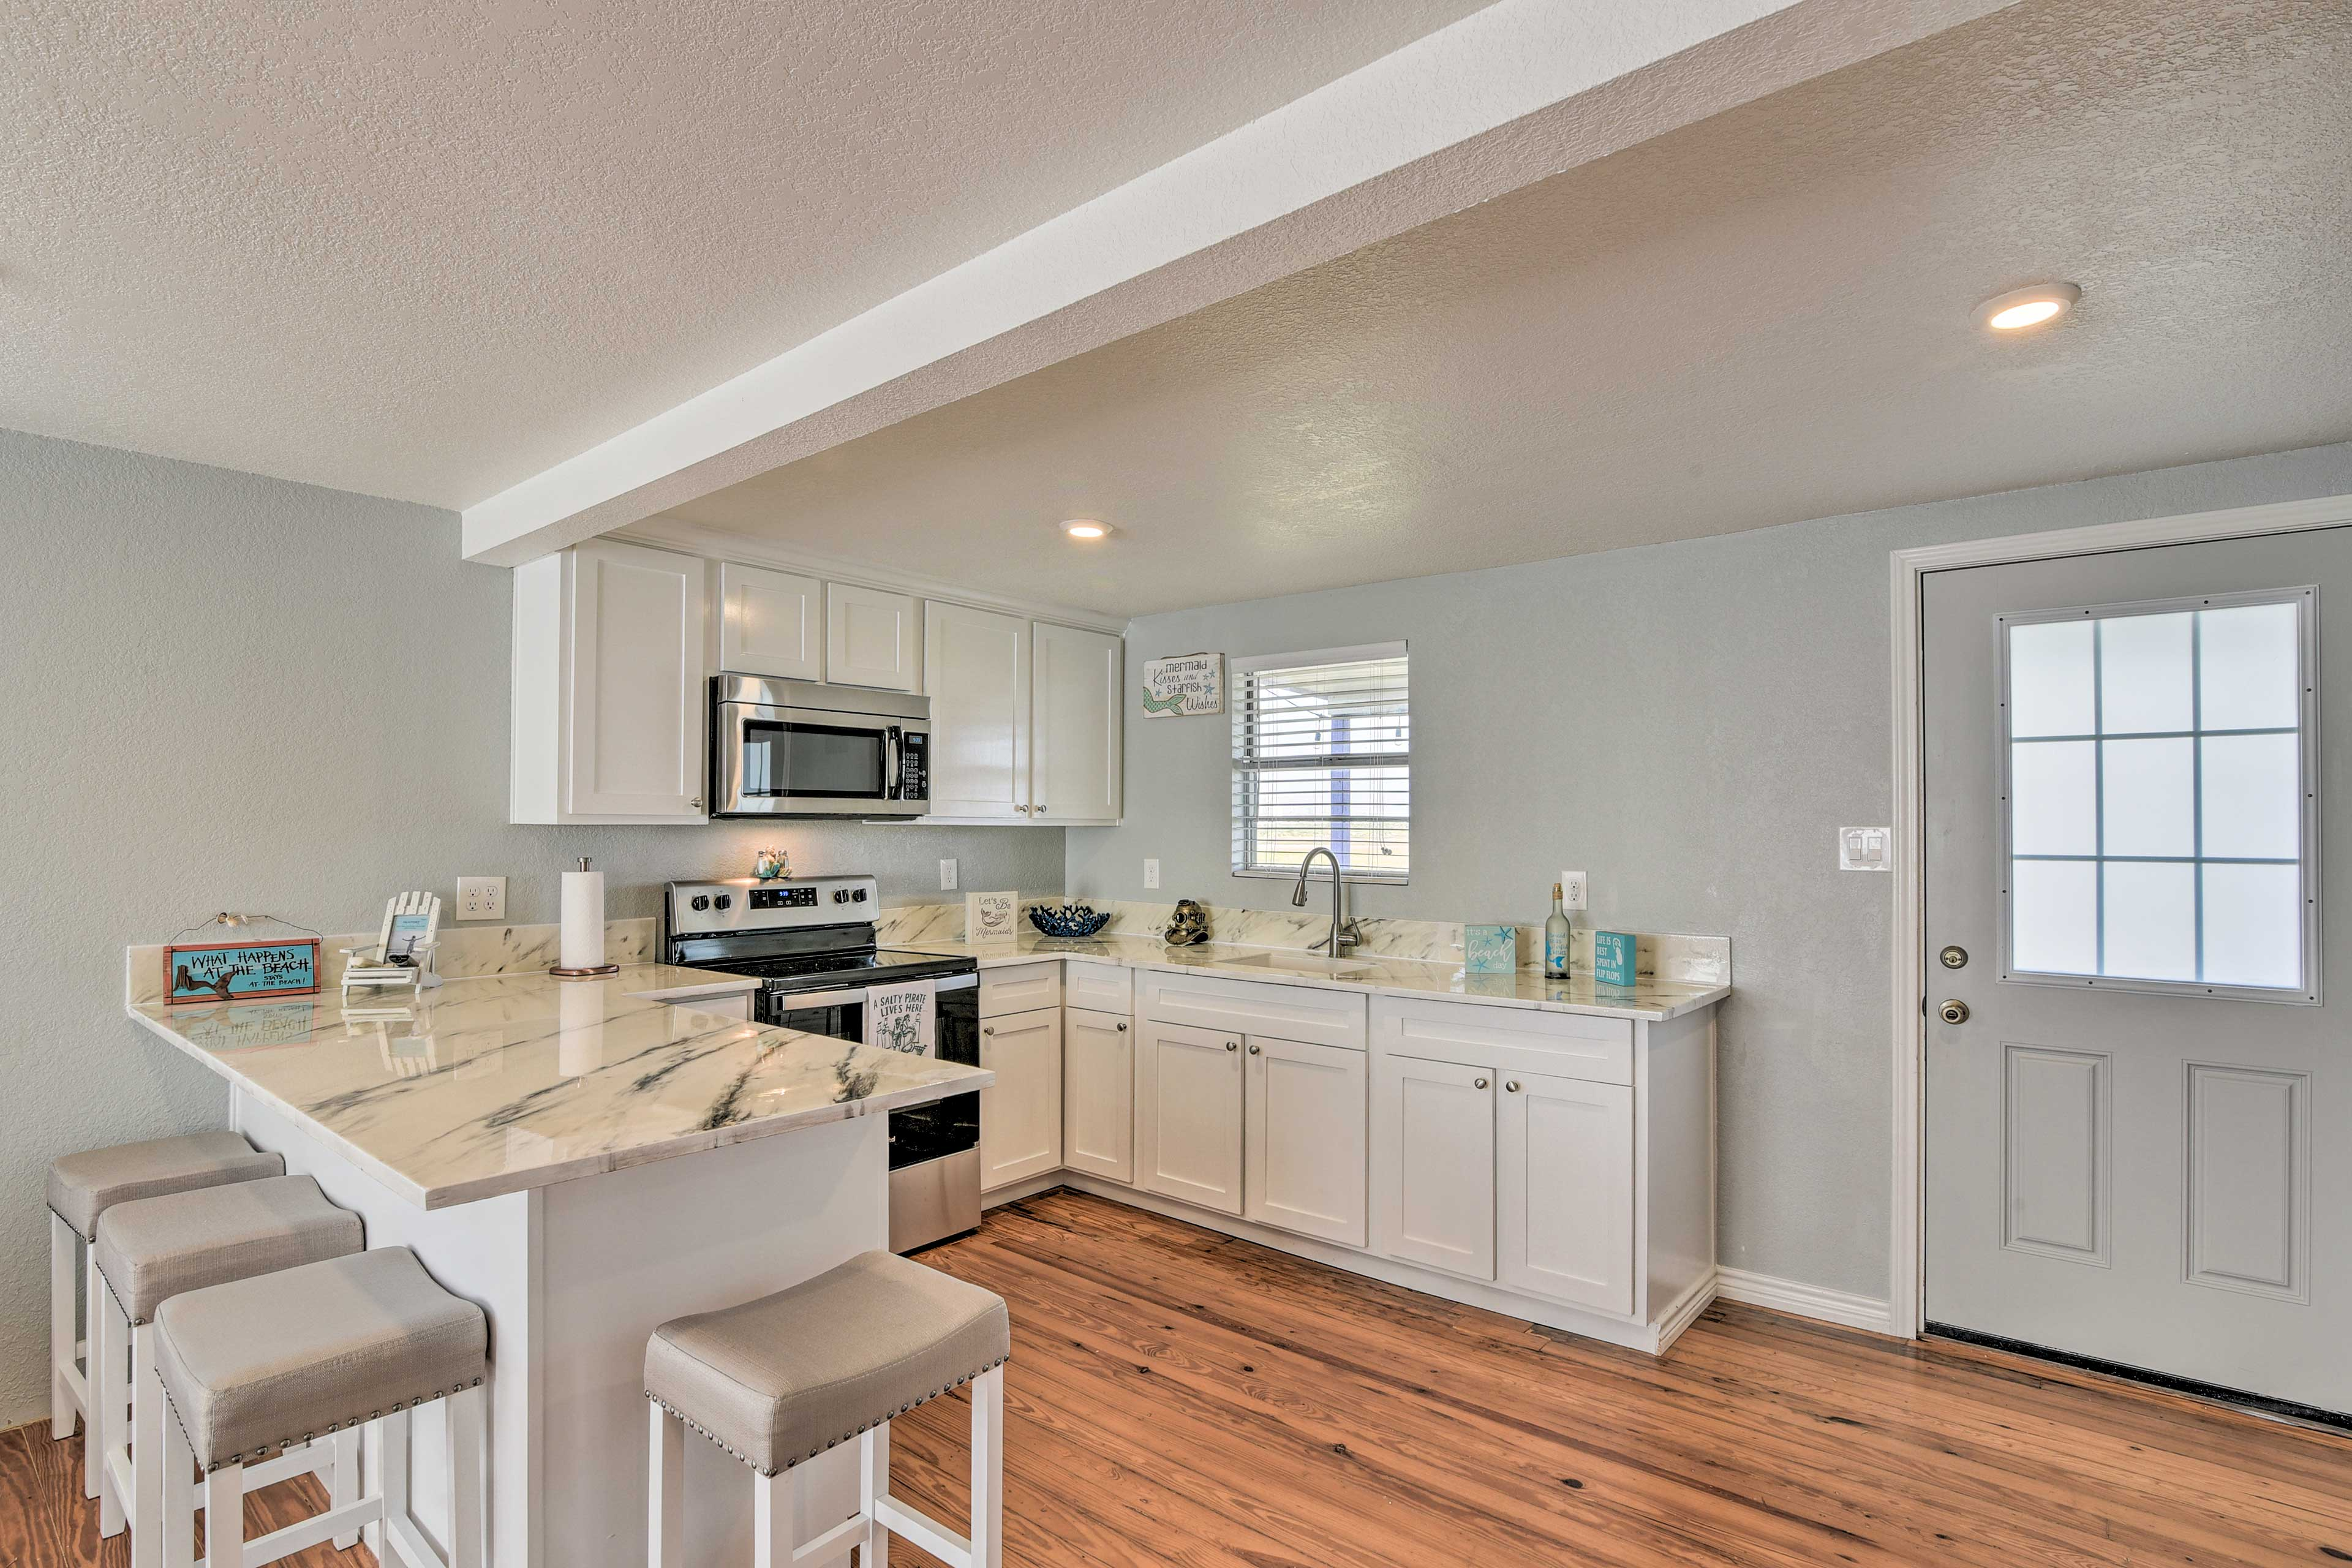 Kitchen   Fully Equipped   Stainless Steel Appliances